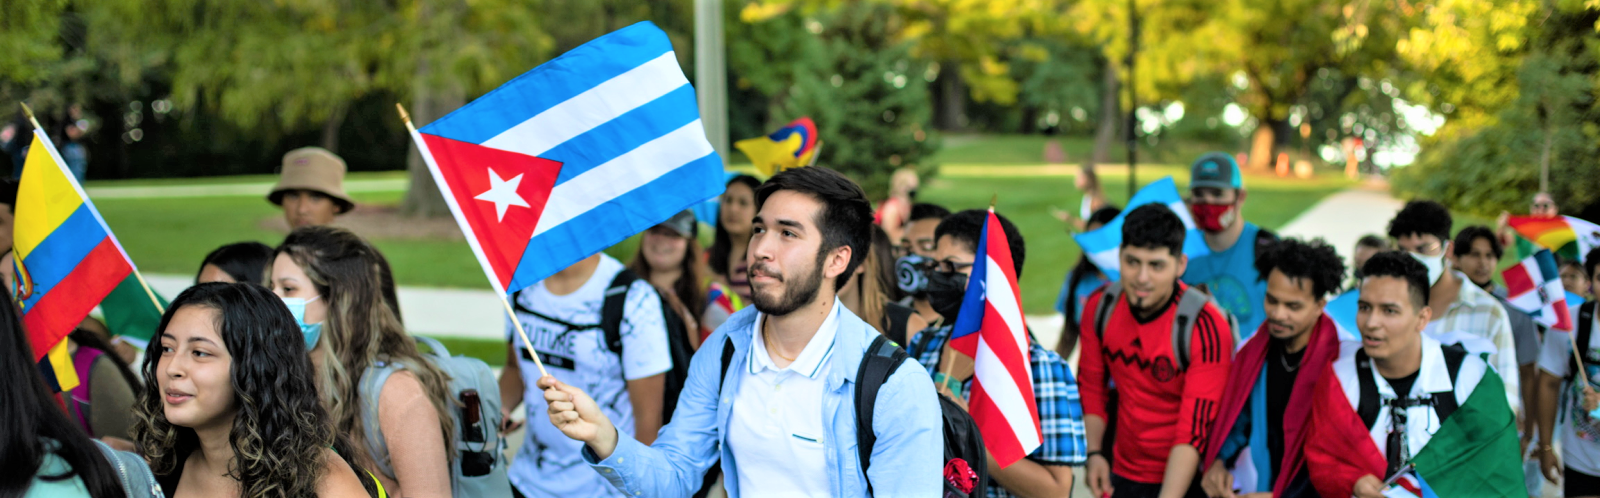 CLS students with flags from Latin American countries during the March Up Bascom